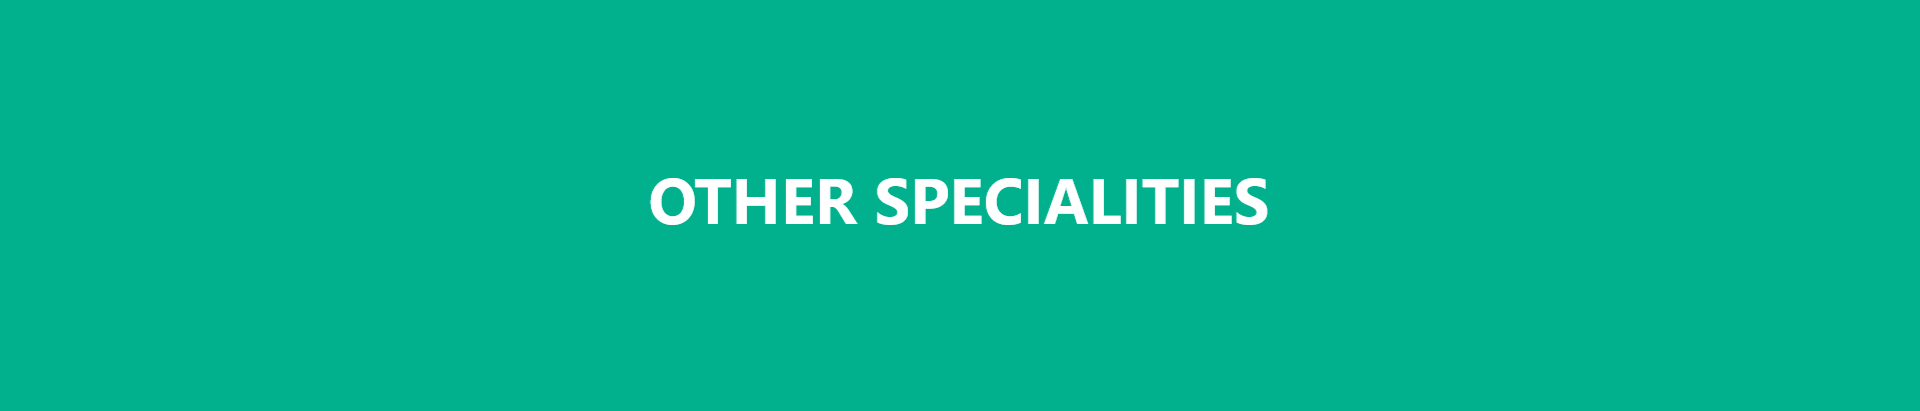 Other-Specialities